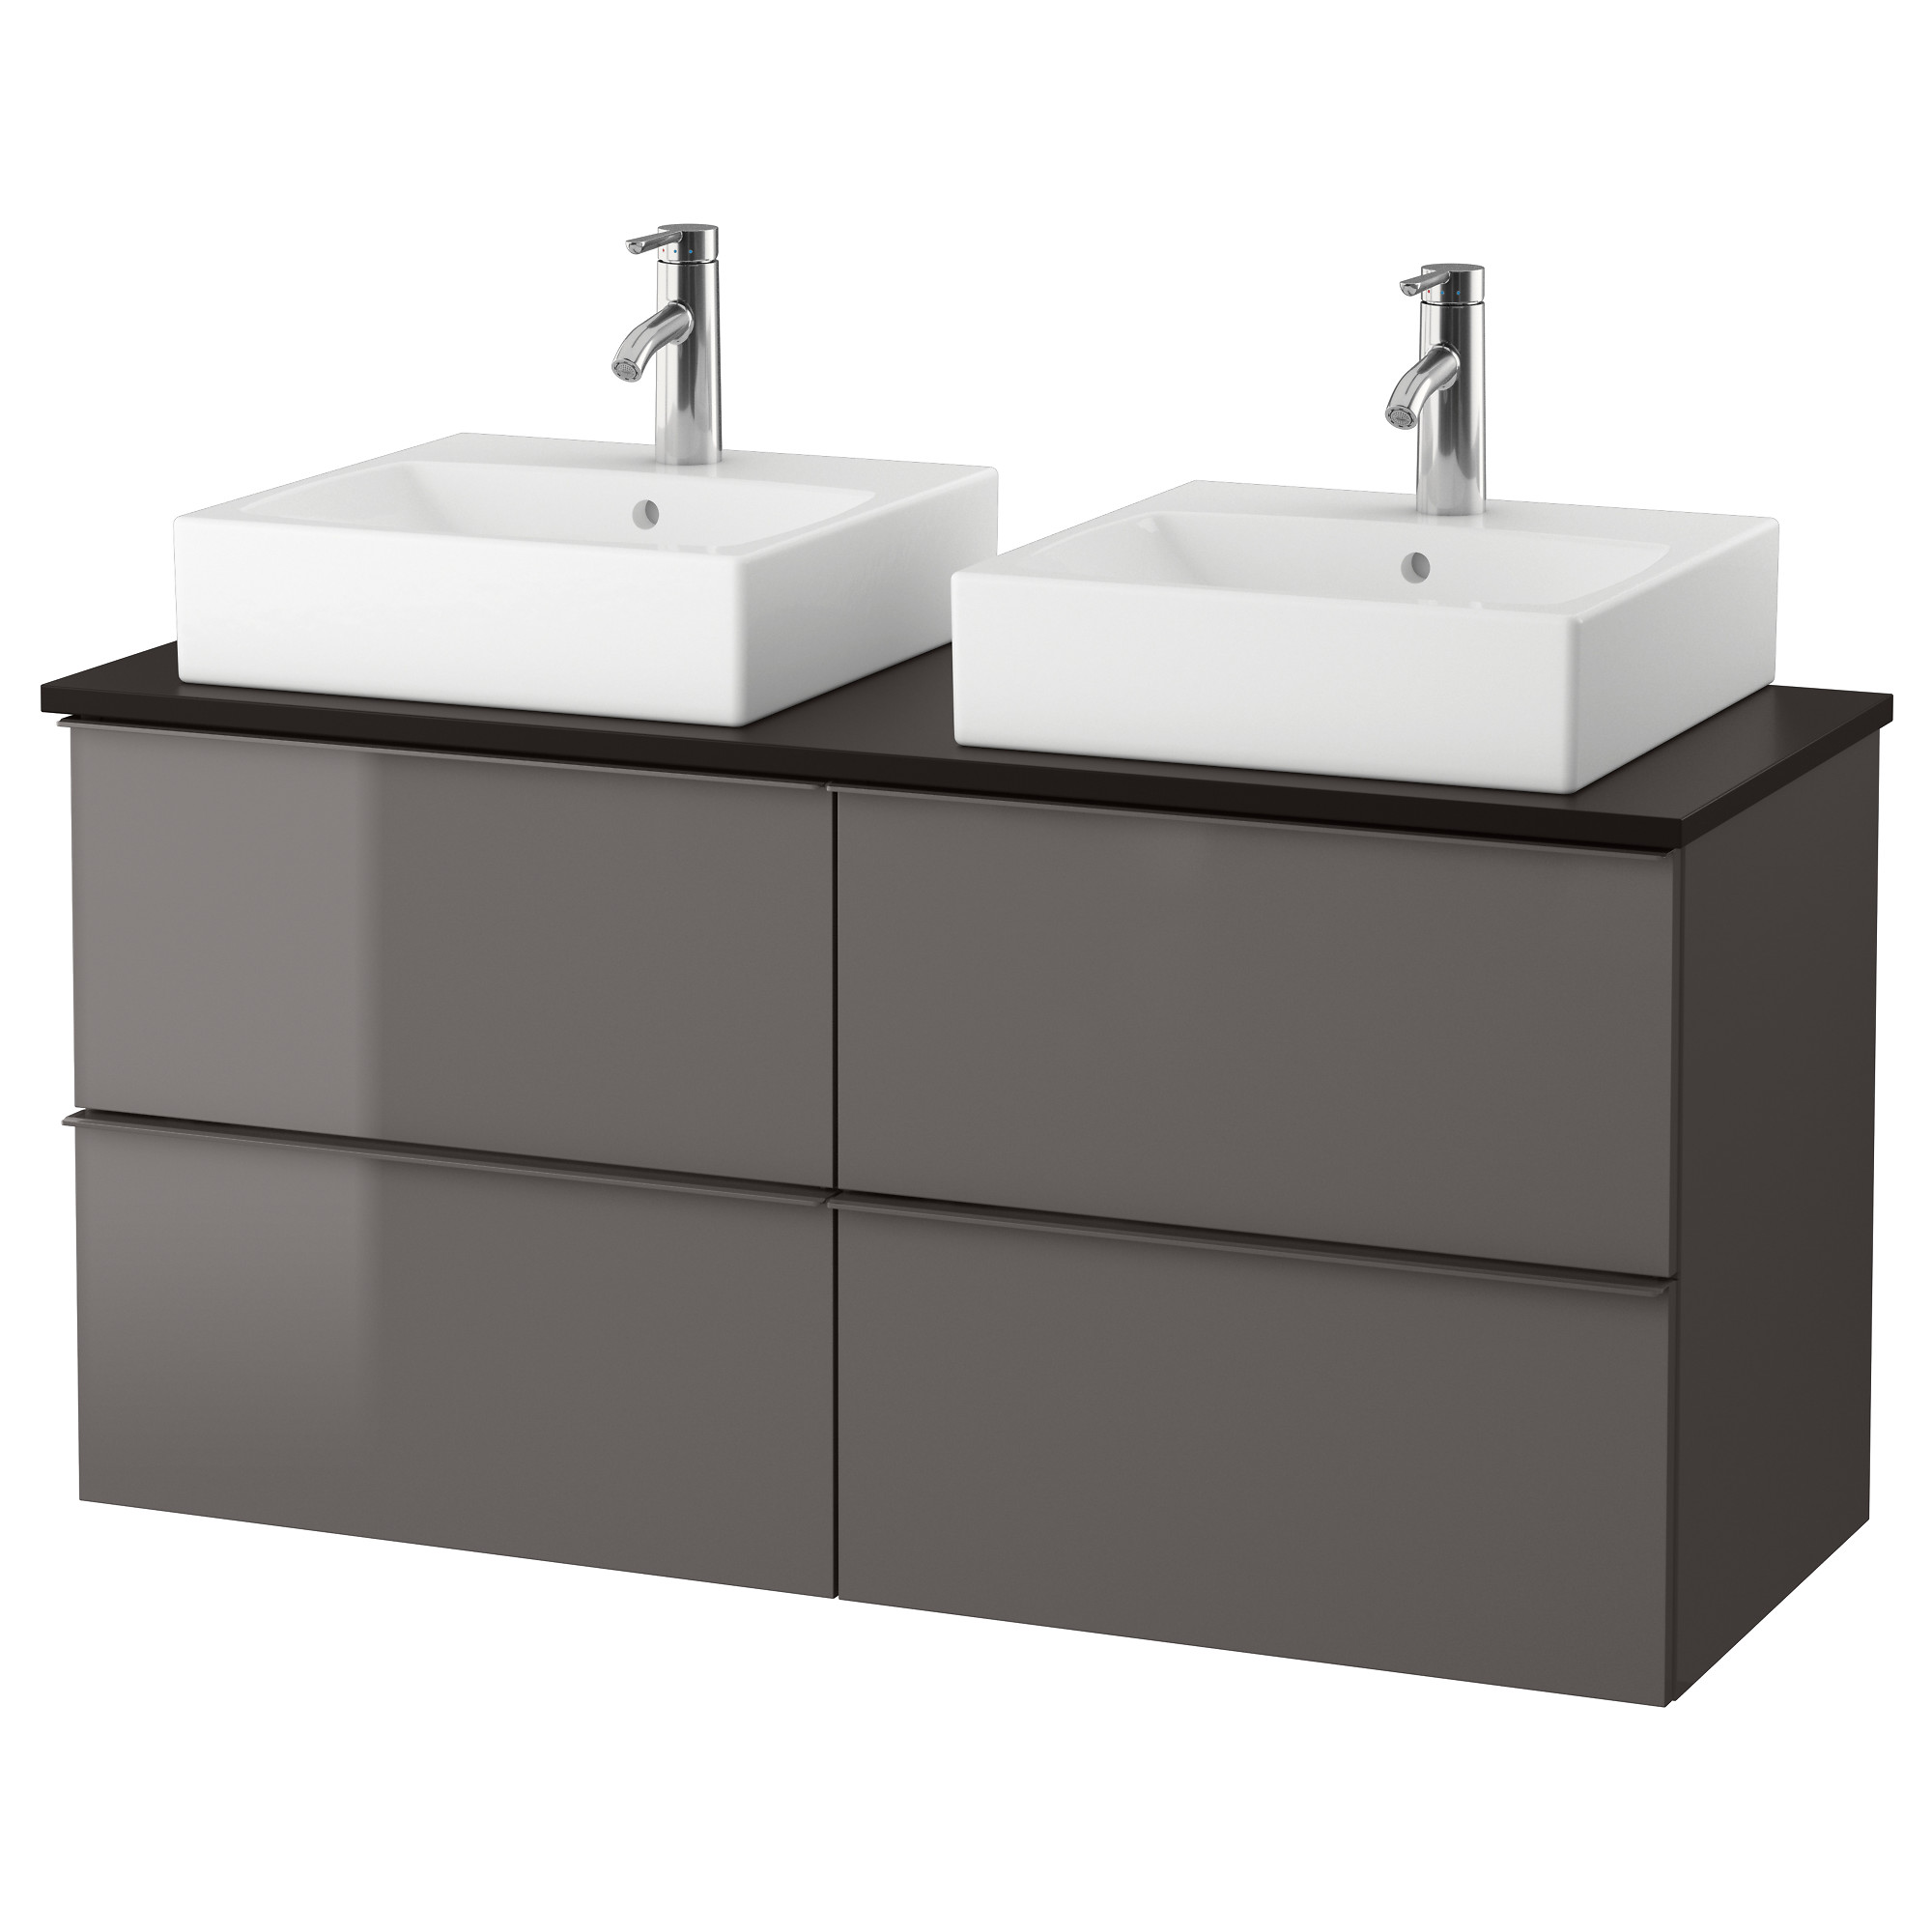 godmorgon tolken trnviken vanity countertop and 17 34 sink - Bathroom Cabinets Black Gloss